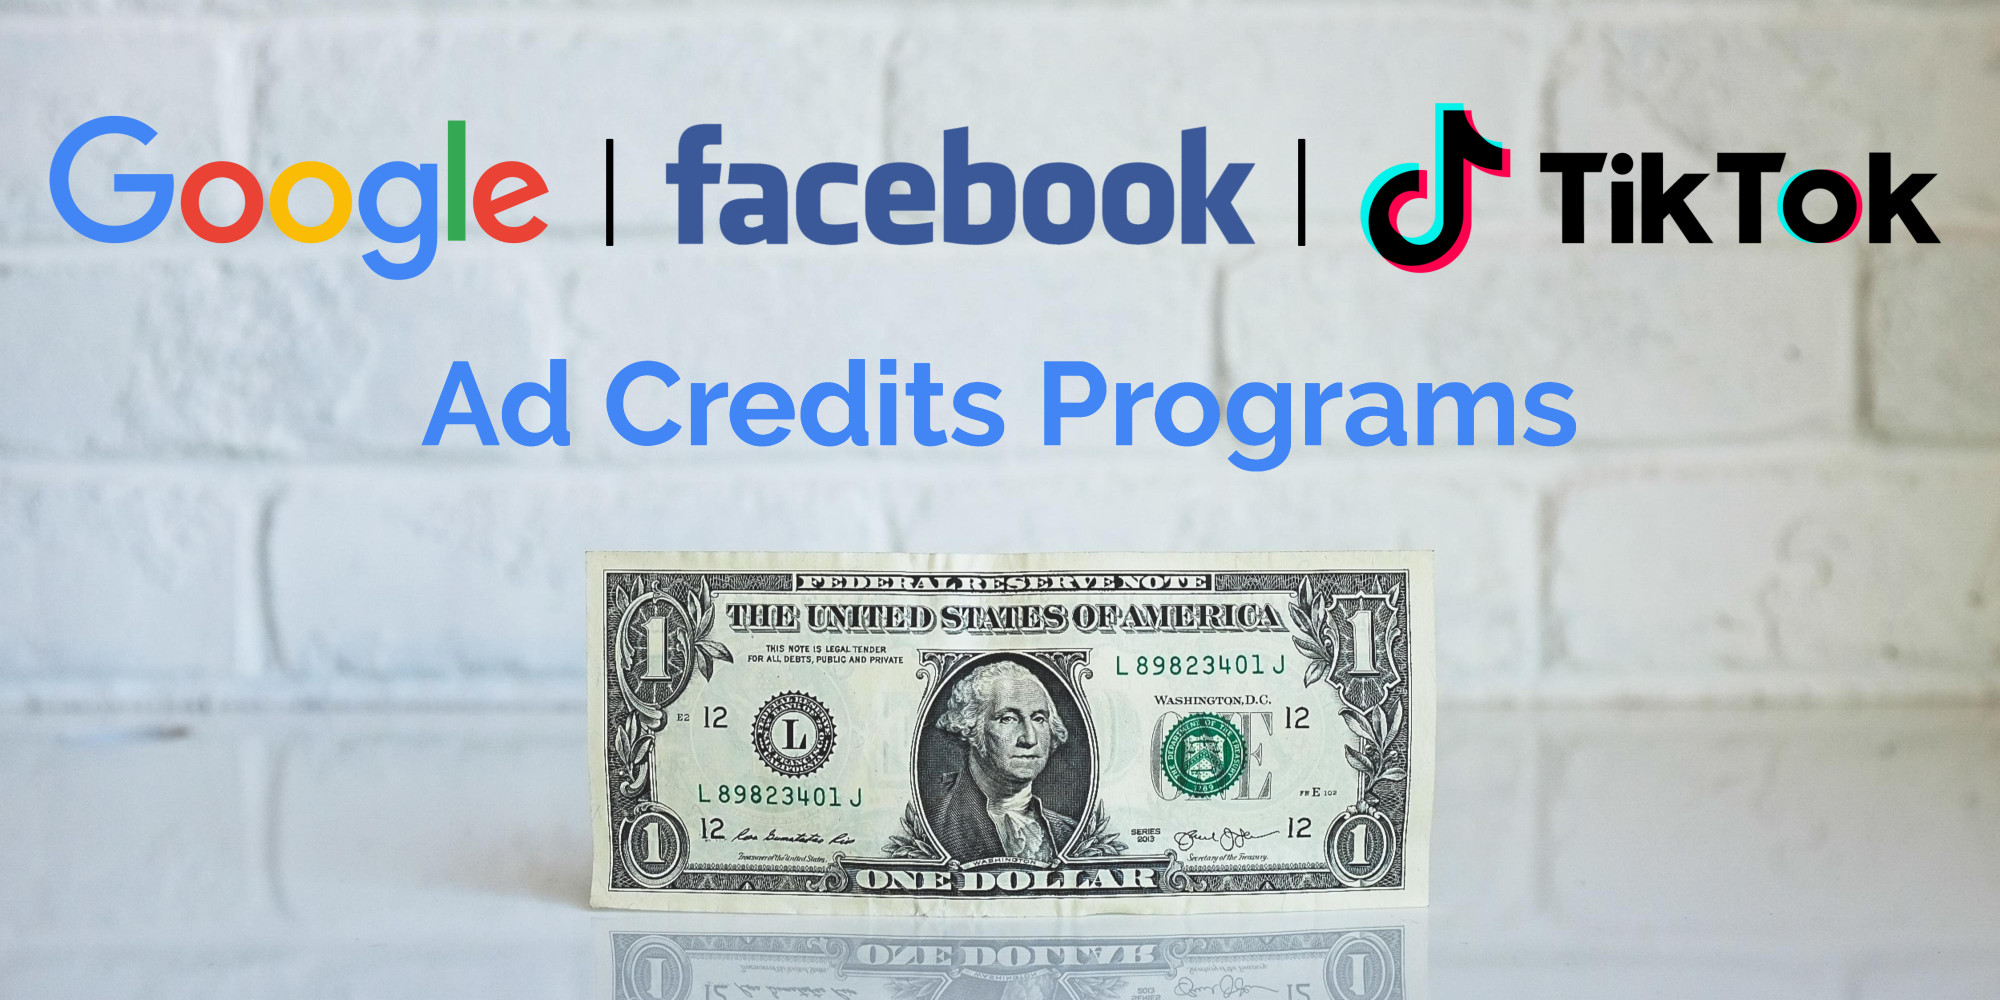 What You Need to Know About the Facebook, TikTok and Google Ads Credit for Small-to-Medium Sized Enterprises (SMEs)